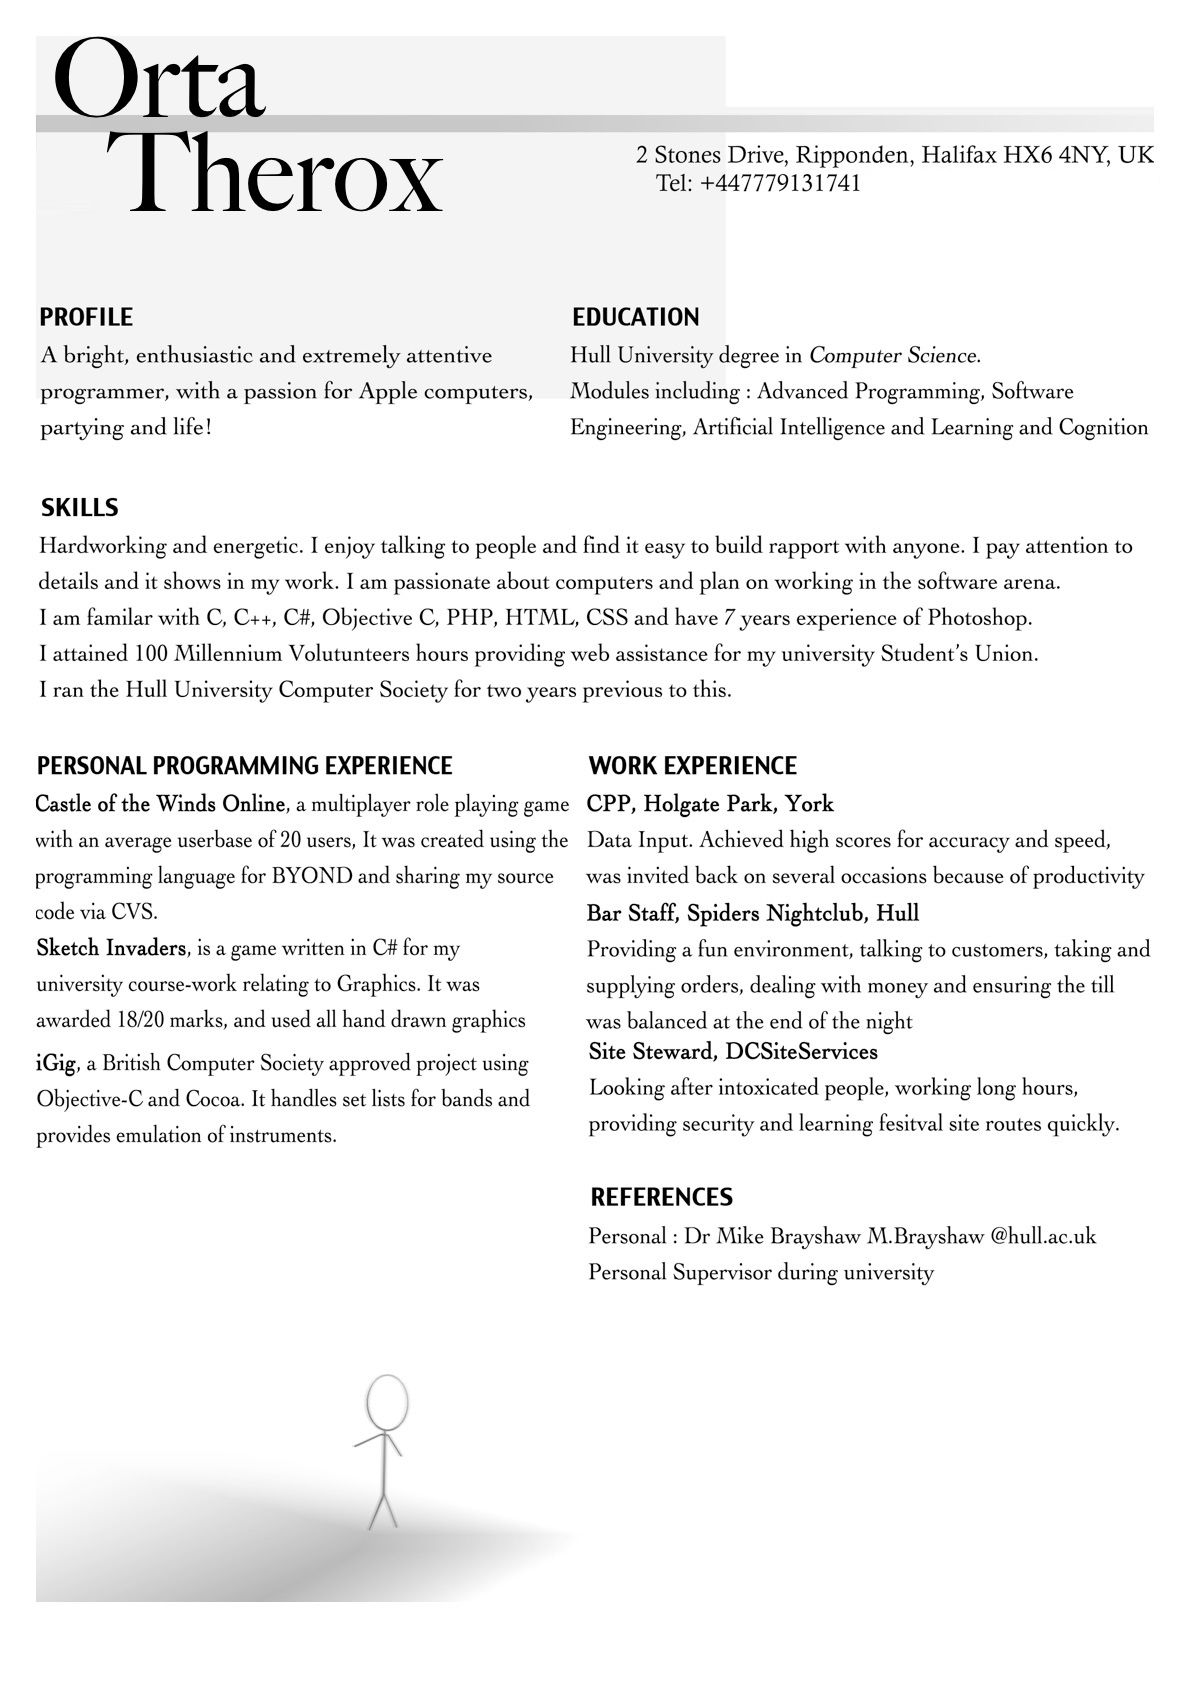 Resume For First Job Interviewing Applying And Getting Your First Job In Ios  Artsy